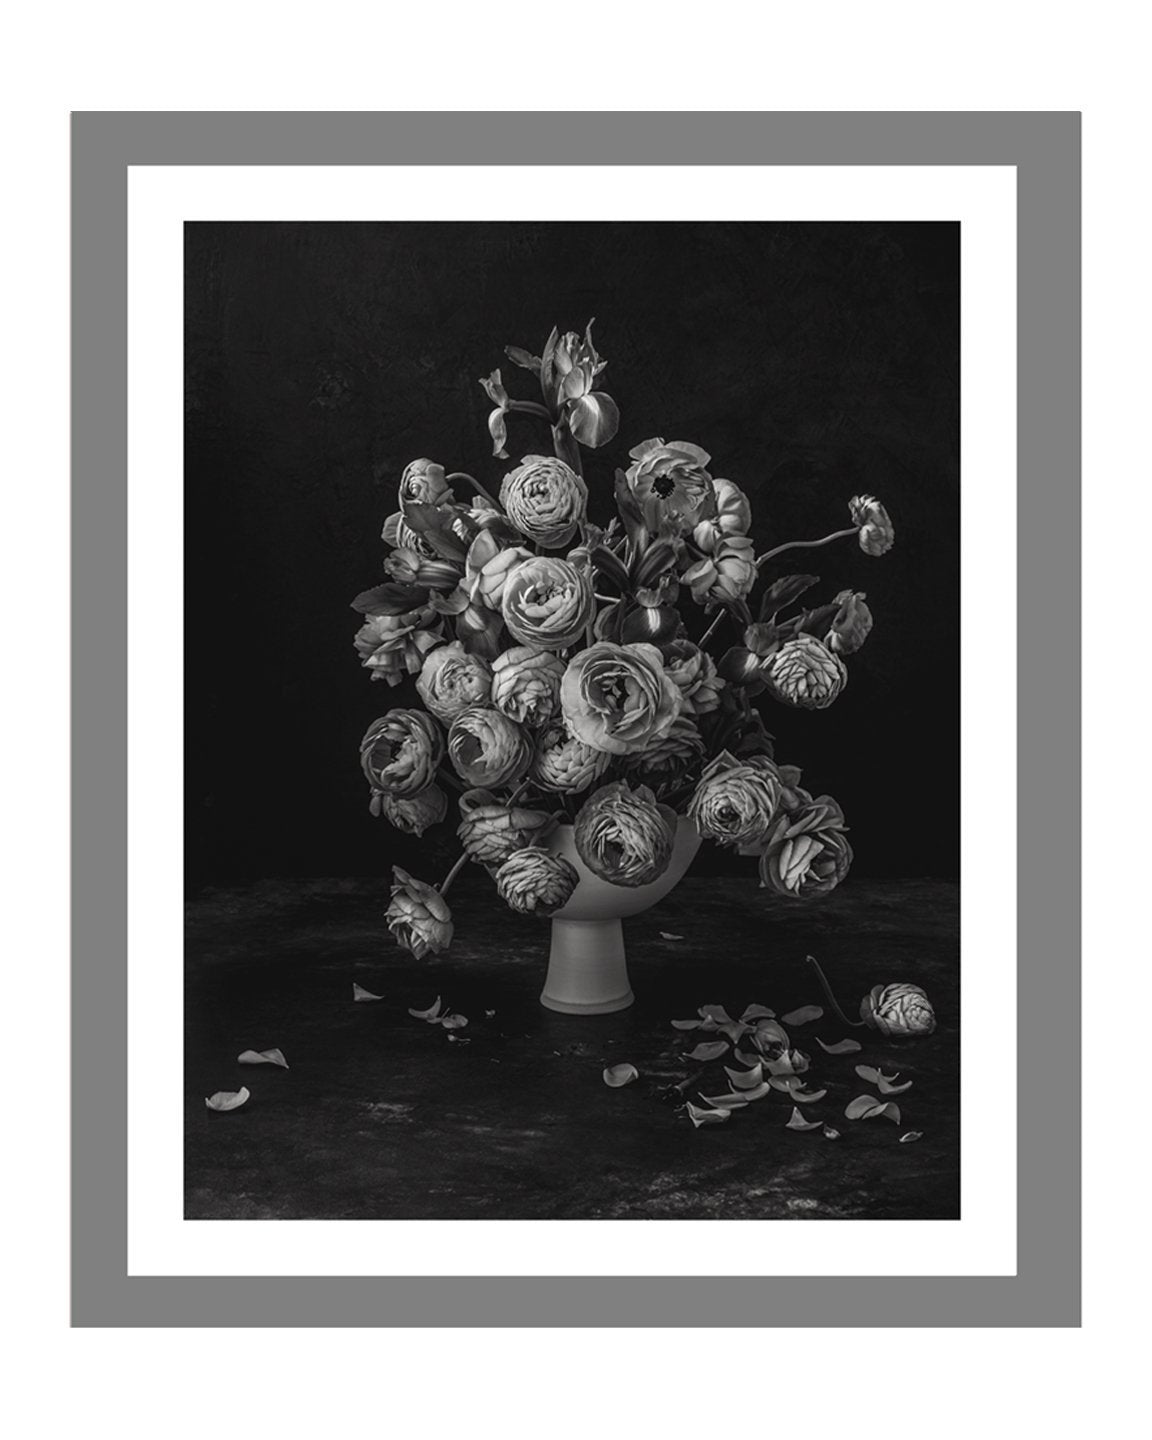 Crushing on You | Classic romantic fine art flower prints